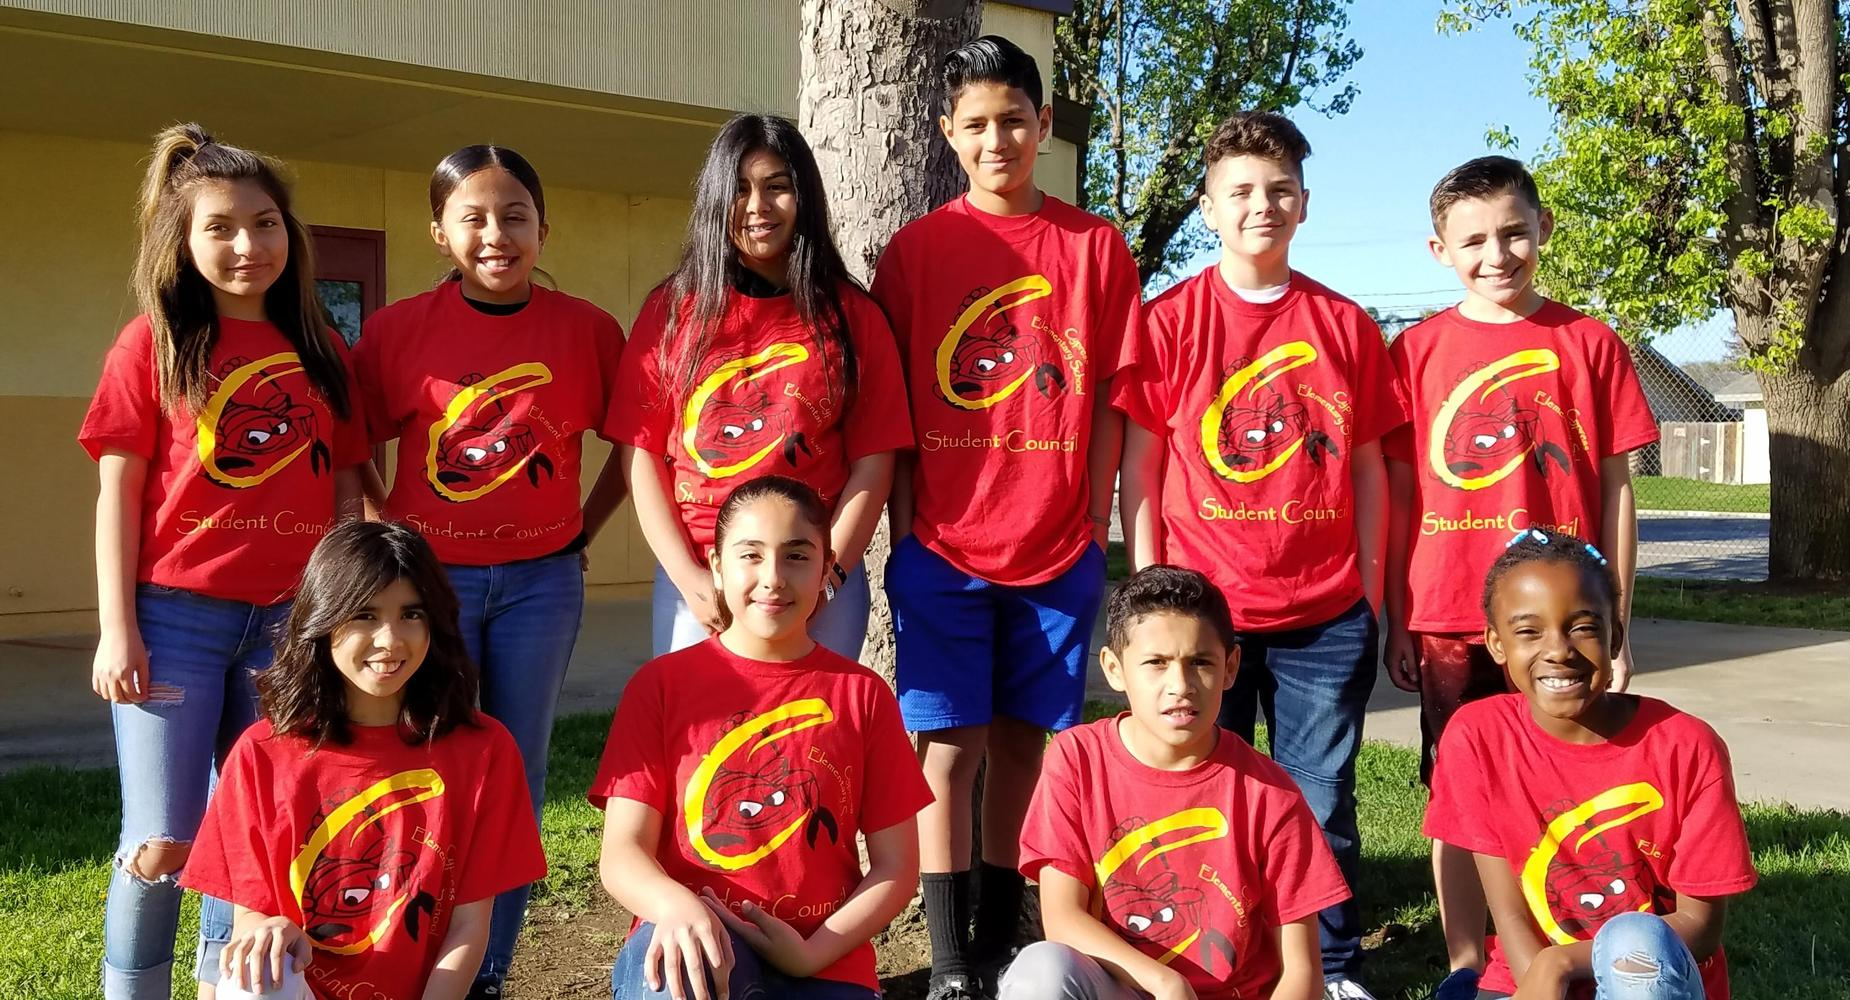 Cypress students who participated in student council